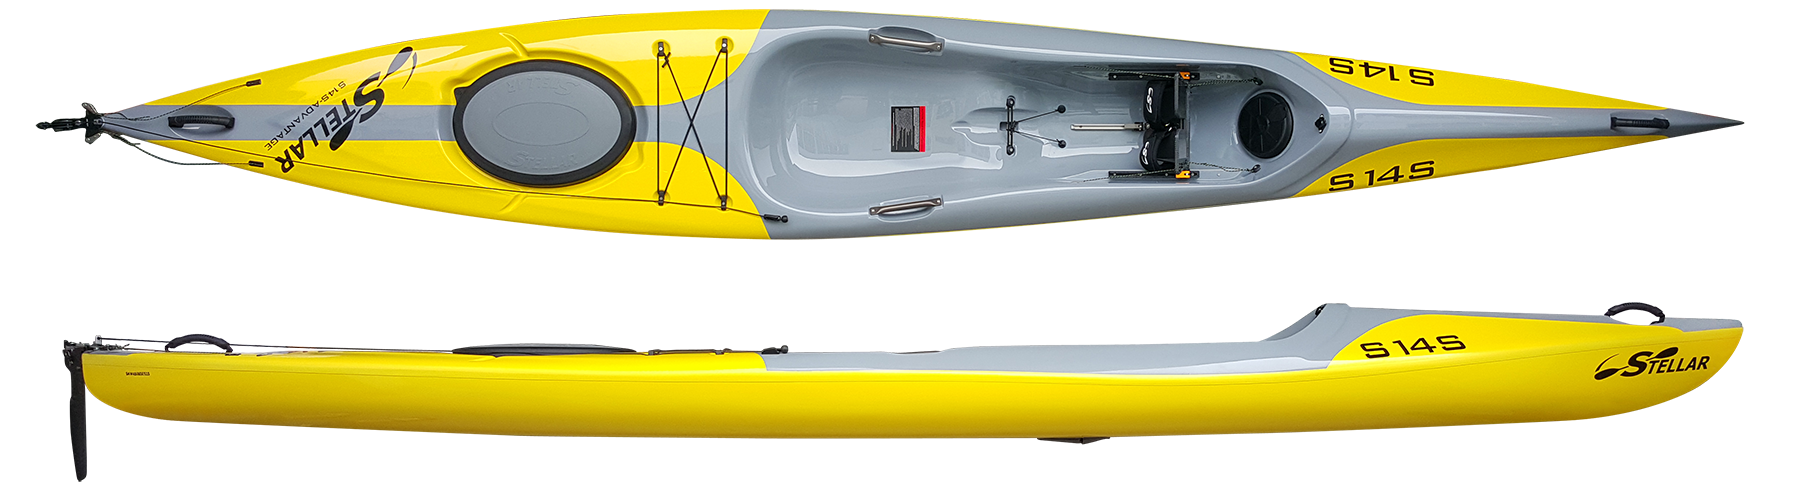 S14S: The Stellar 14' Surf Ski (S14S) is a recreational sit-on-top kayak that makes entry and exit a breeze by eliminating the need to squeeze in and out of a cockpit. The steering system on the boat is very comfortable and responsive too, keeping you on track to where you want to go! Unlike any other boat of this length, the S14S has the speed of a much longer boat, but beginners can feel comfortable paddling it. Two water tight hatches allow for modest storage for day tripping and overnight adventures. Its short length and light weight make it ideal for those who want a high performance boat that is easy to carry, car-top, and store.